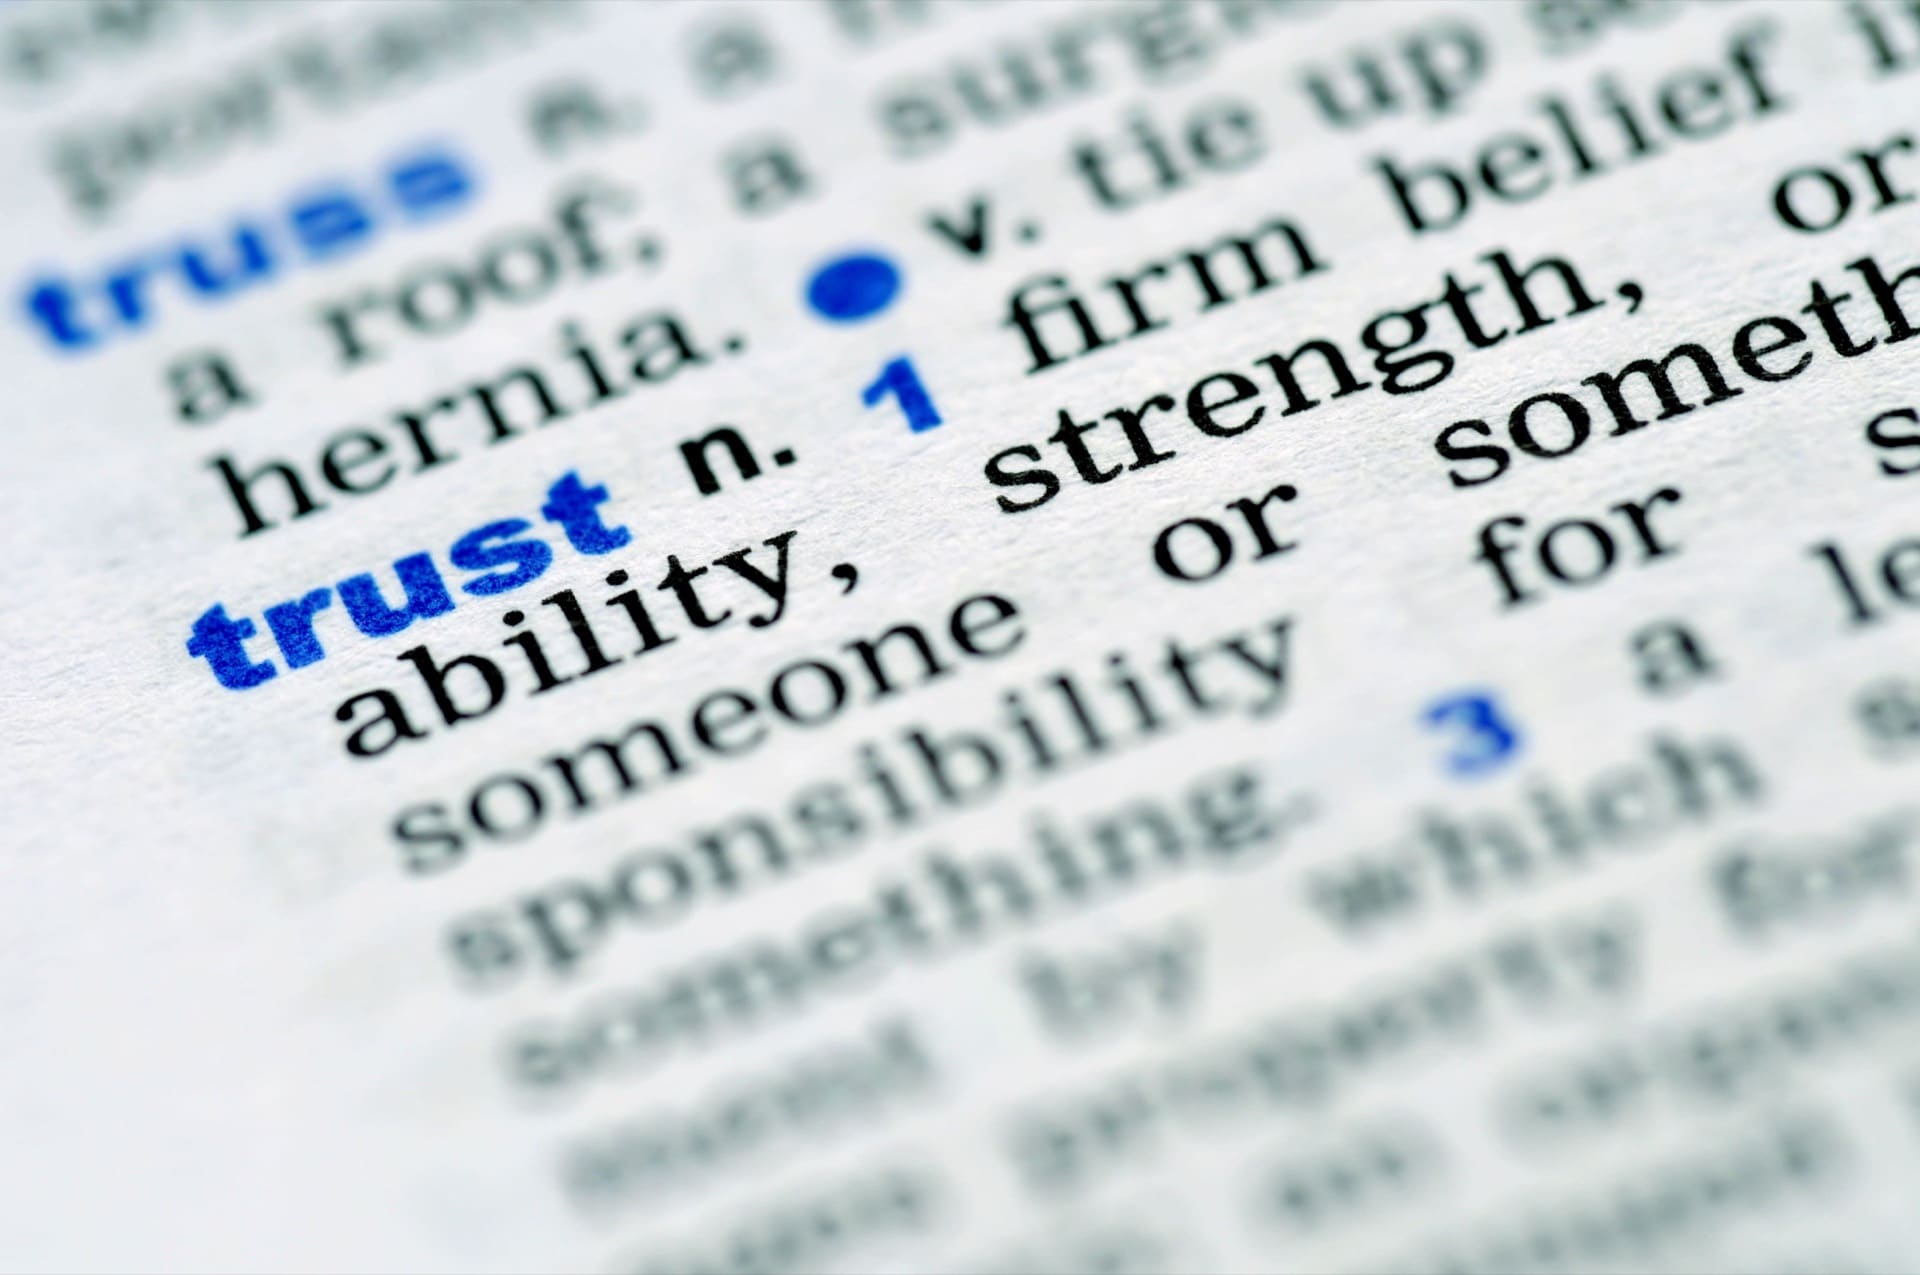 Rebuilding trust should be a top priority for leaders